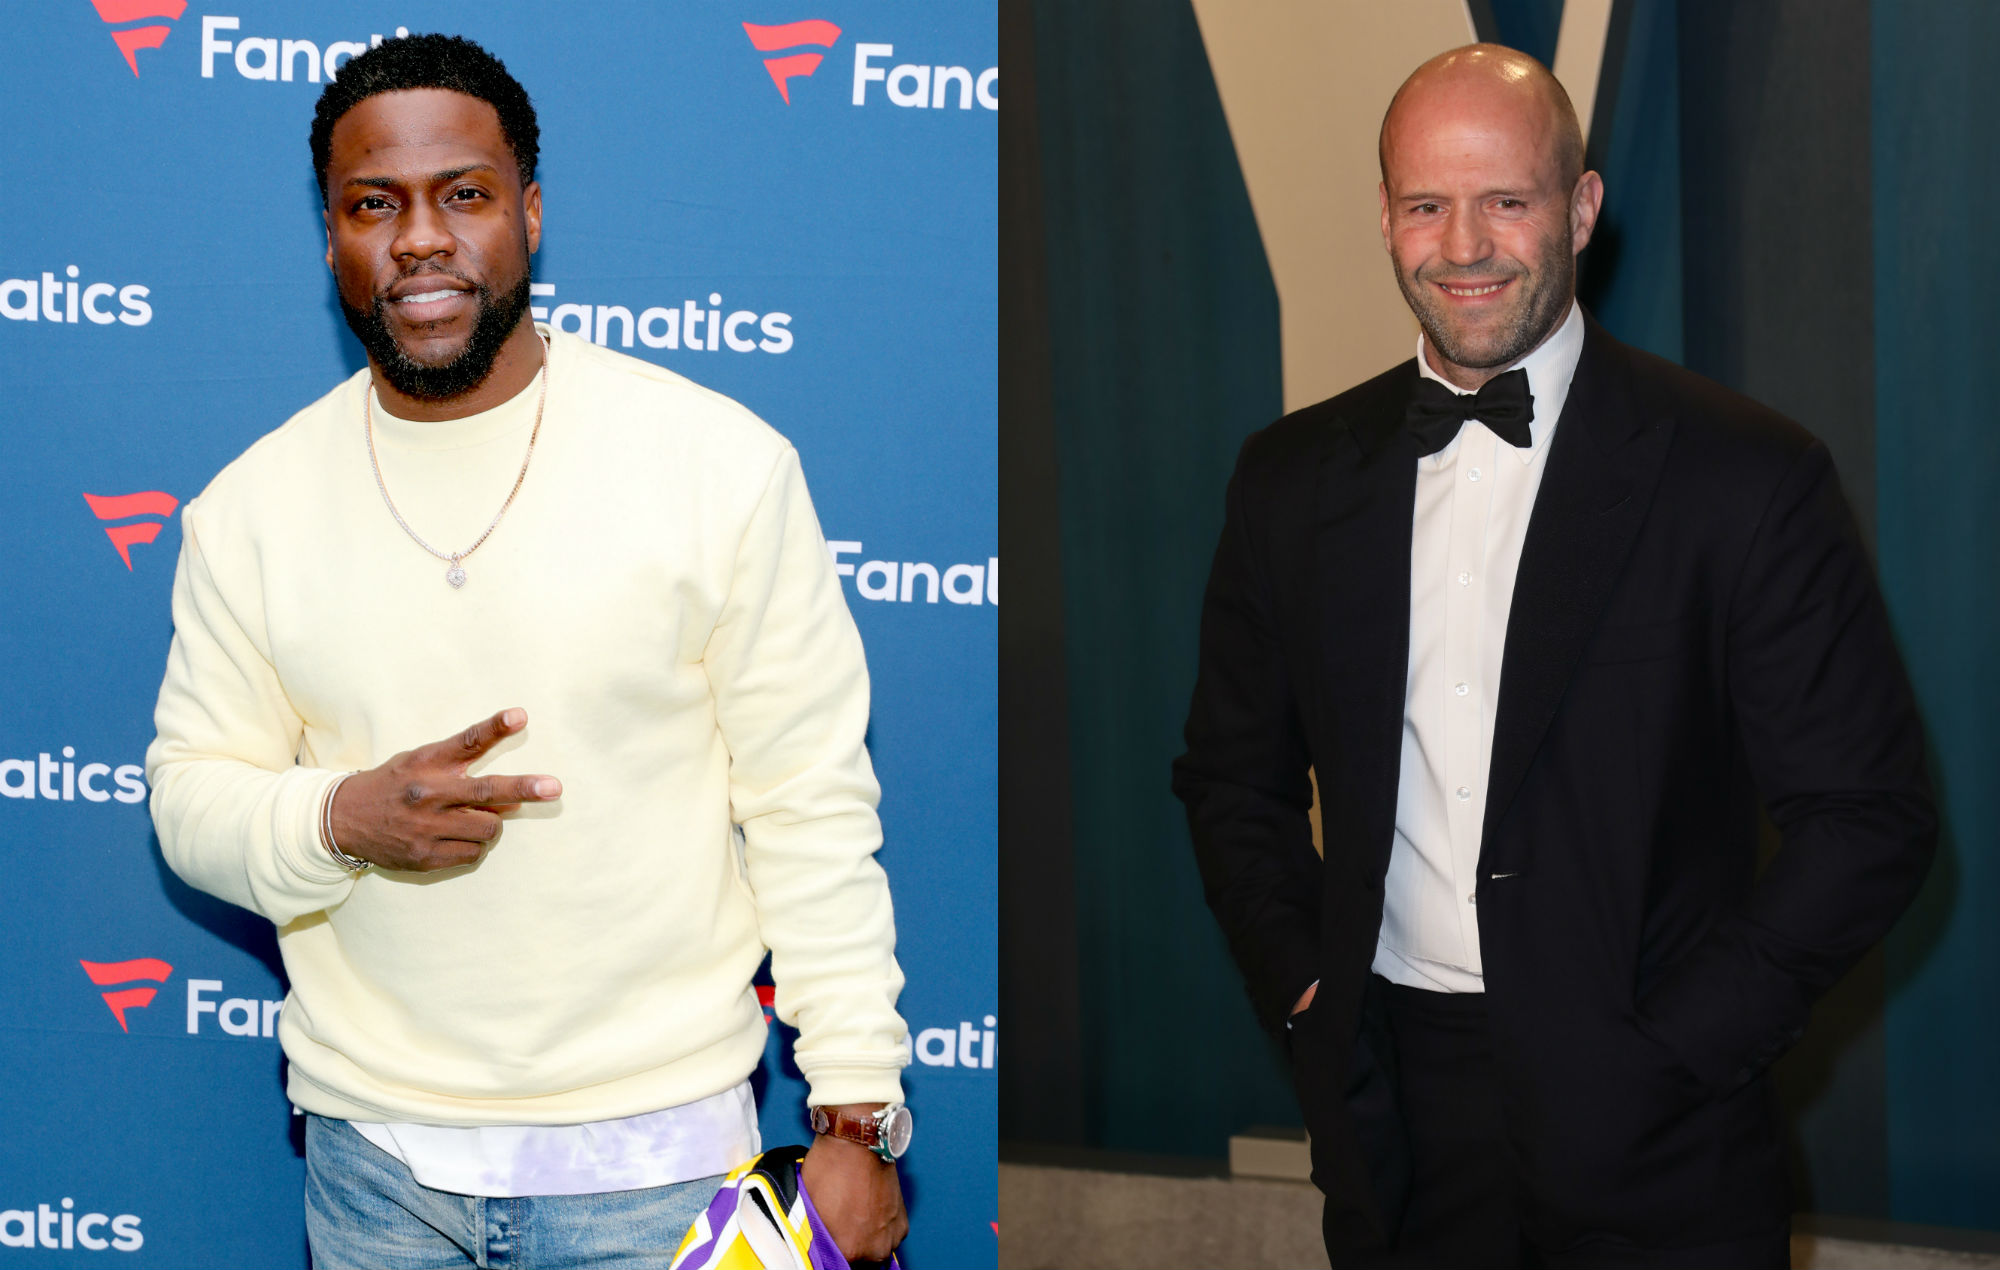 Kevin Hart says he and Jason Statham are going to co-star in 'The Man From Toronto'